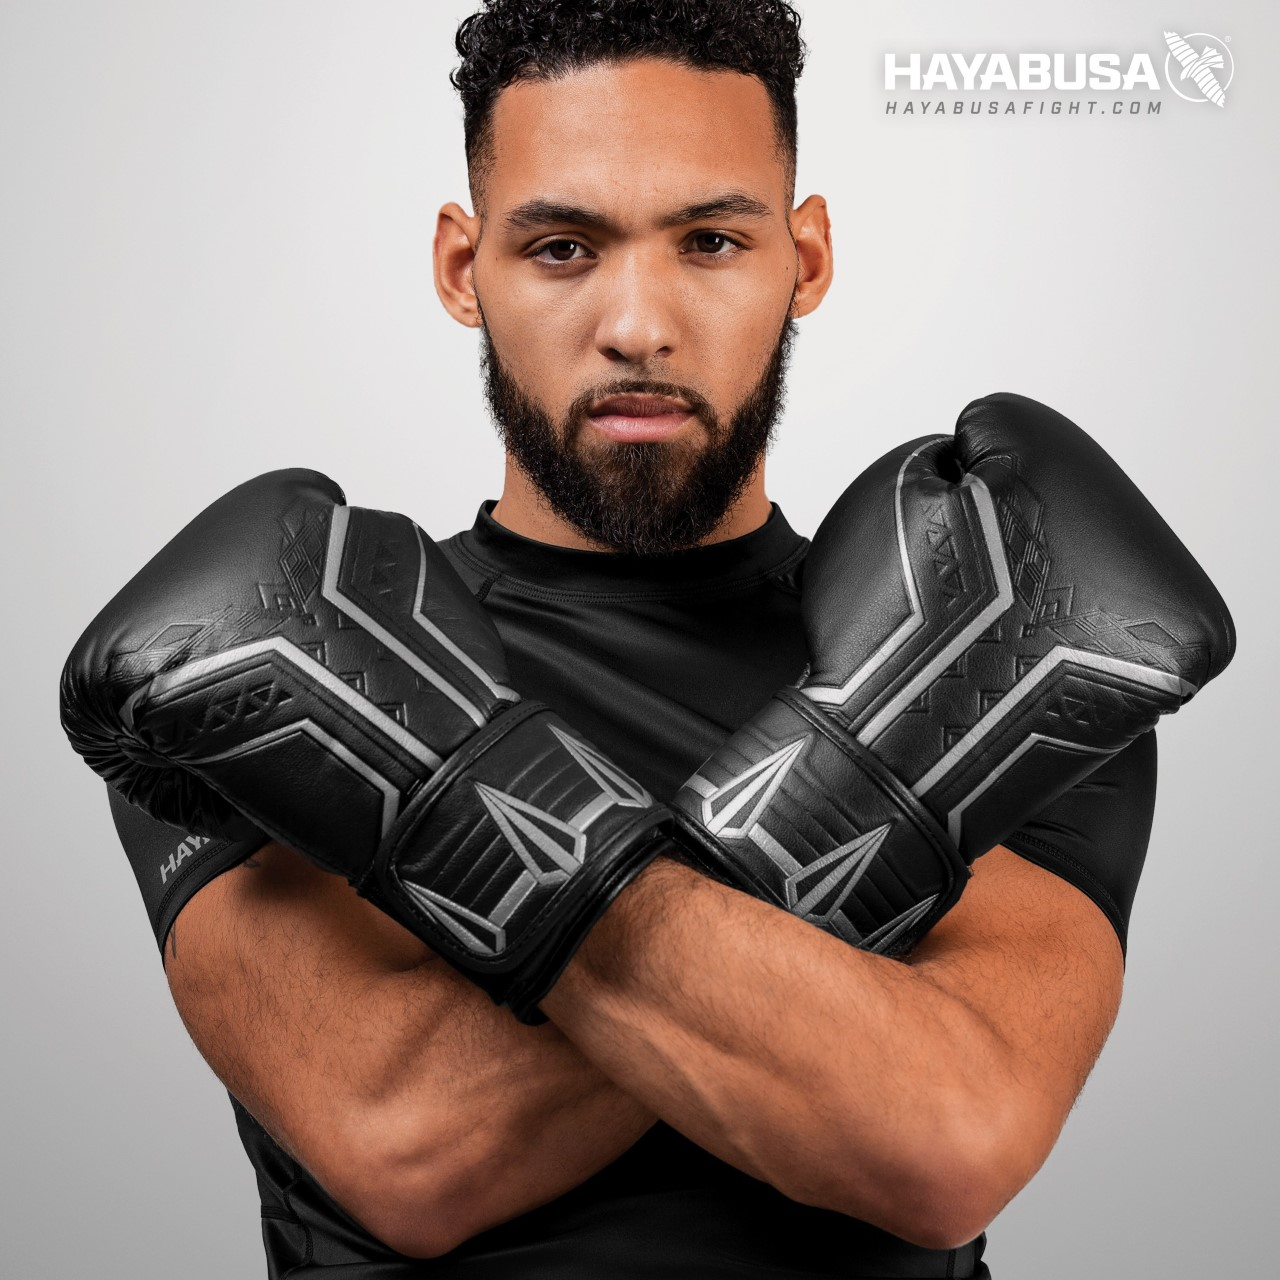 b32f947f6 Pre-orders for the gloves will begin Feb. 19 on the Hayabusa website